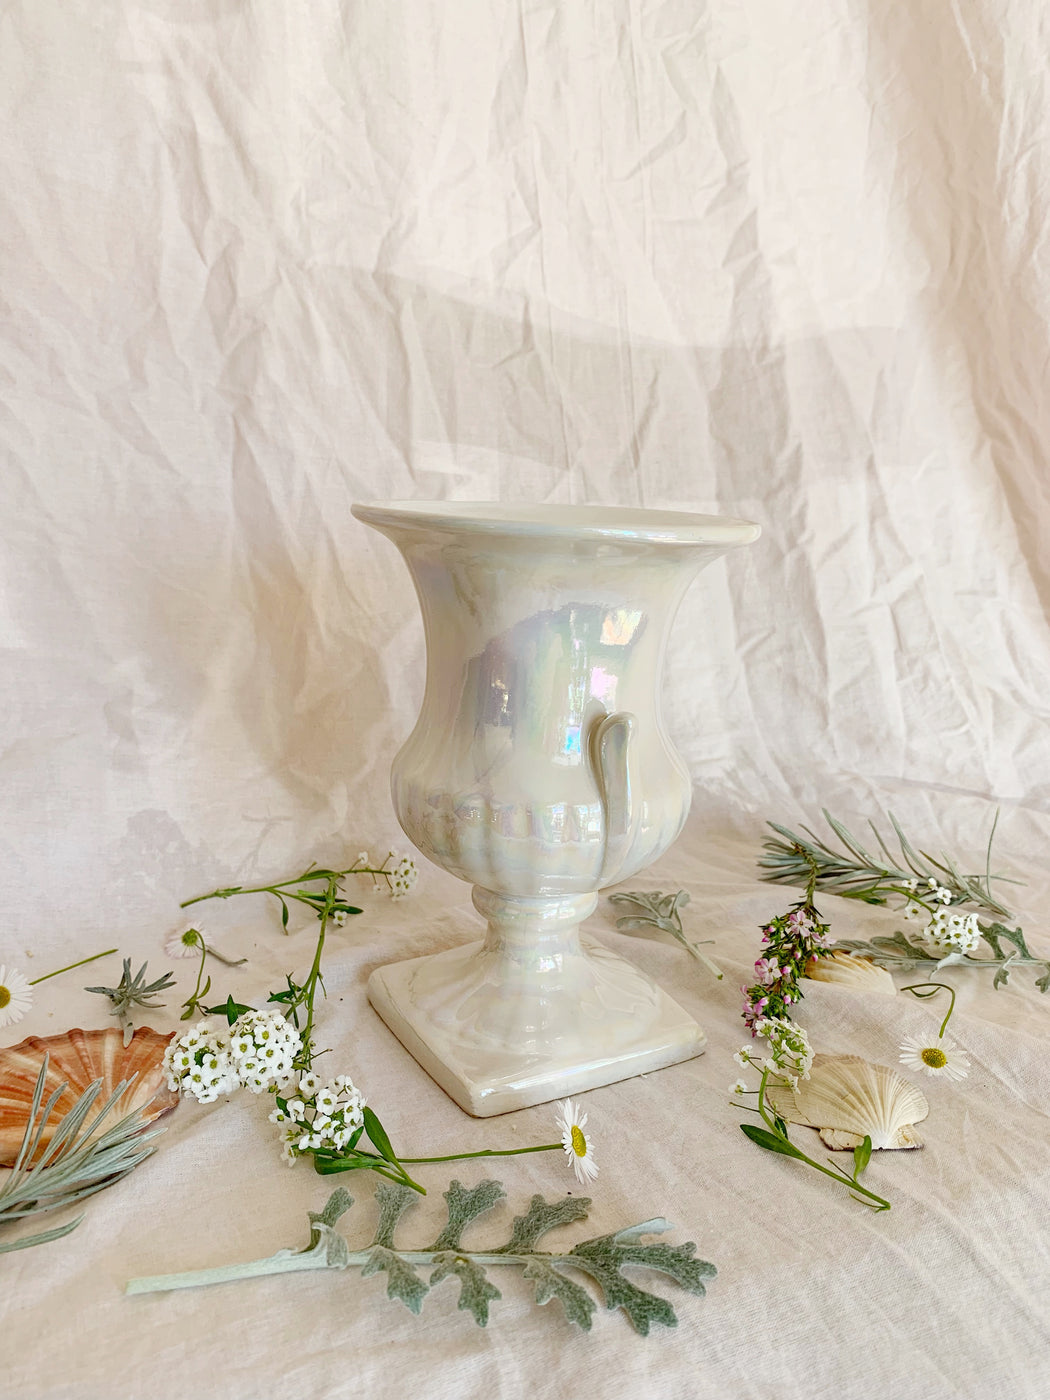 Ceramic Iridescent Vase